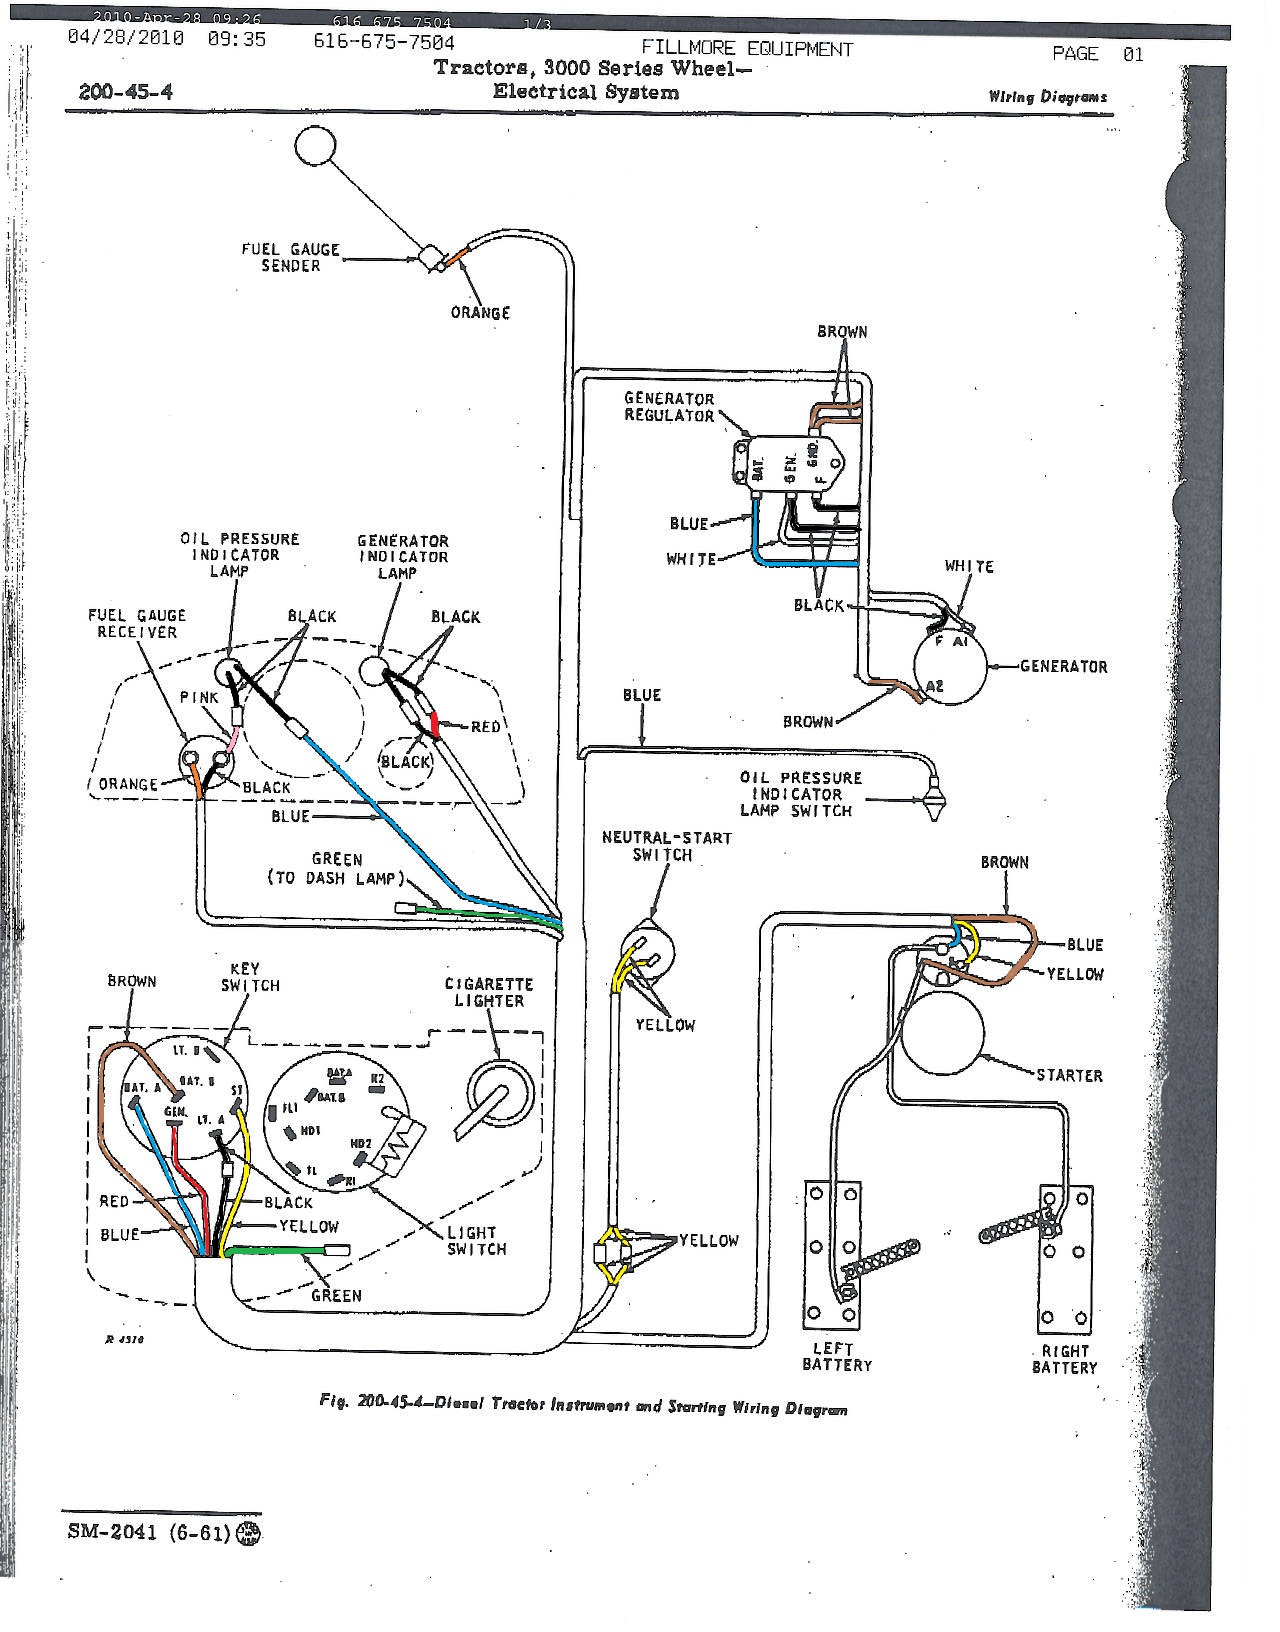 hight resolution of wrg 4500 jd 3010 wiring diagram wiring diagram in addition john deere tractor voltage regulator wiring